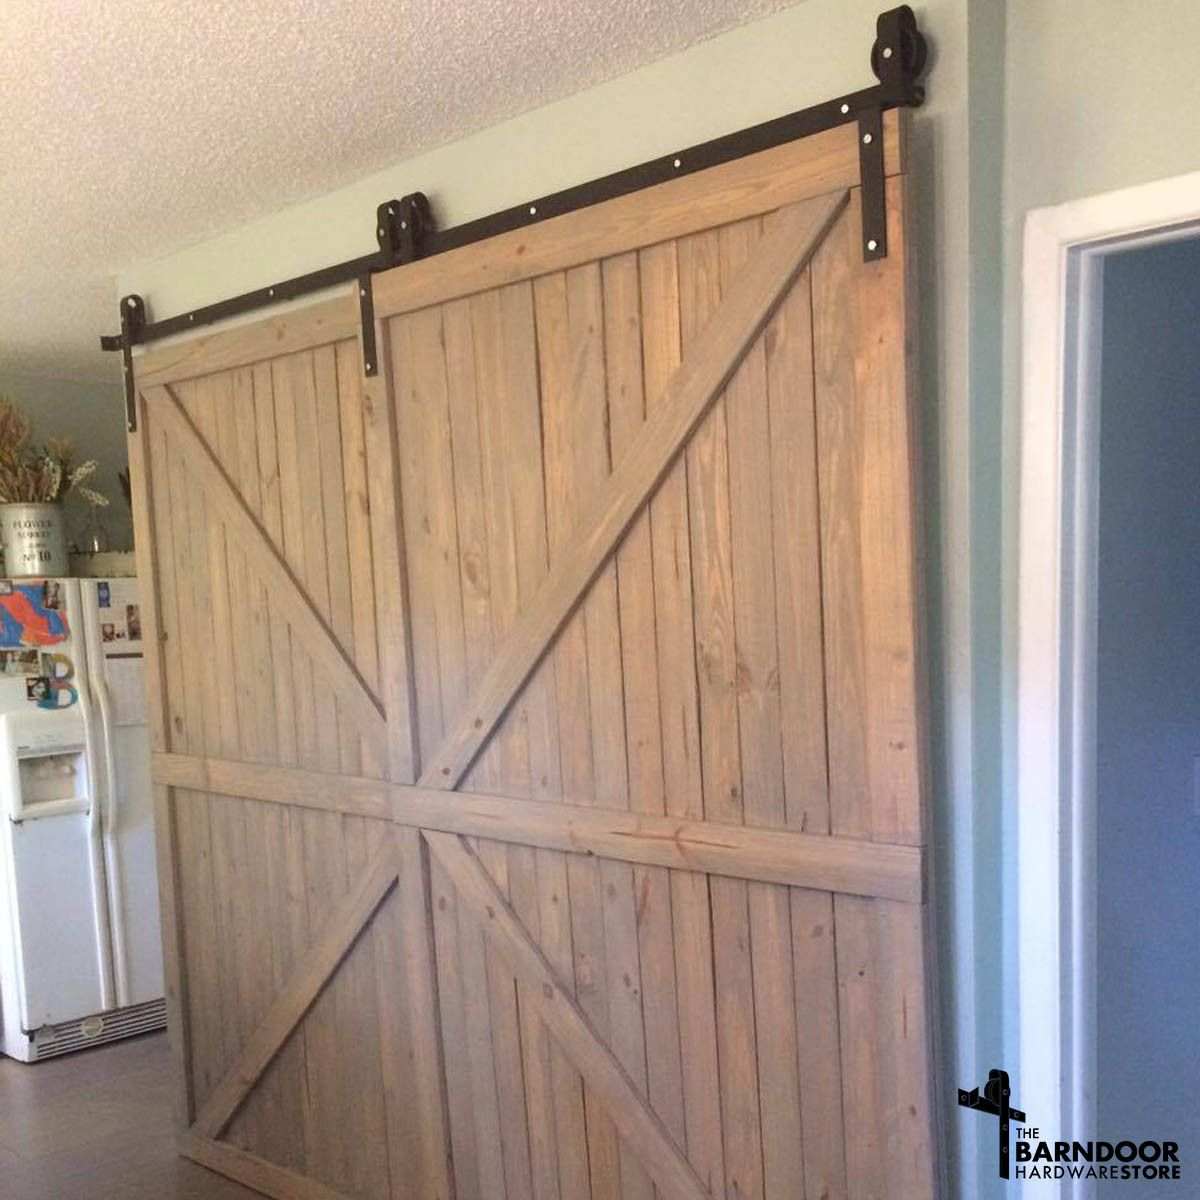 Single Track Bypass Barn Door Hardware Kit For 2 Doors On One Track Bypass Barn Door Diy Barn Door Barn Door